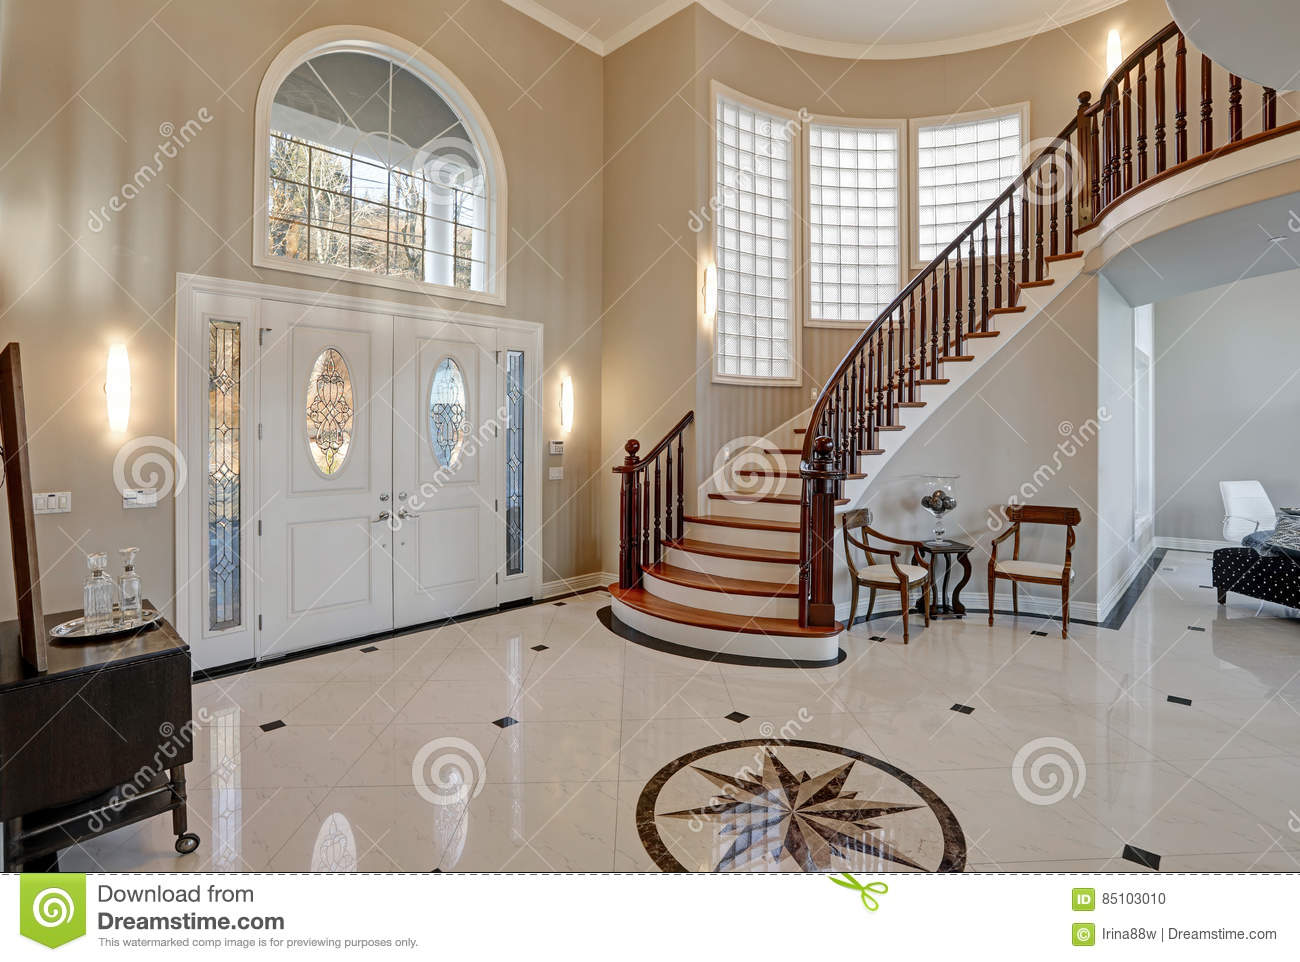 Stunning Two Story Entry Foyer With Marble Mosaic Tiled